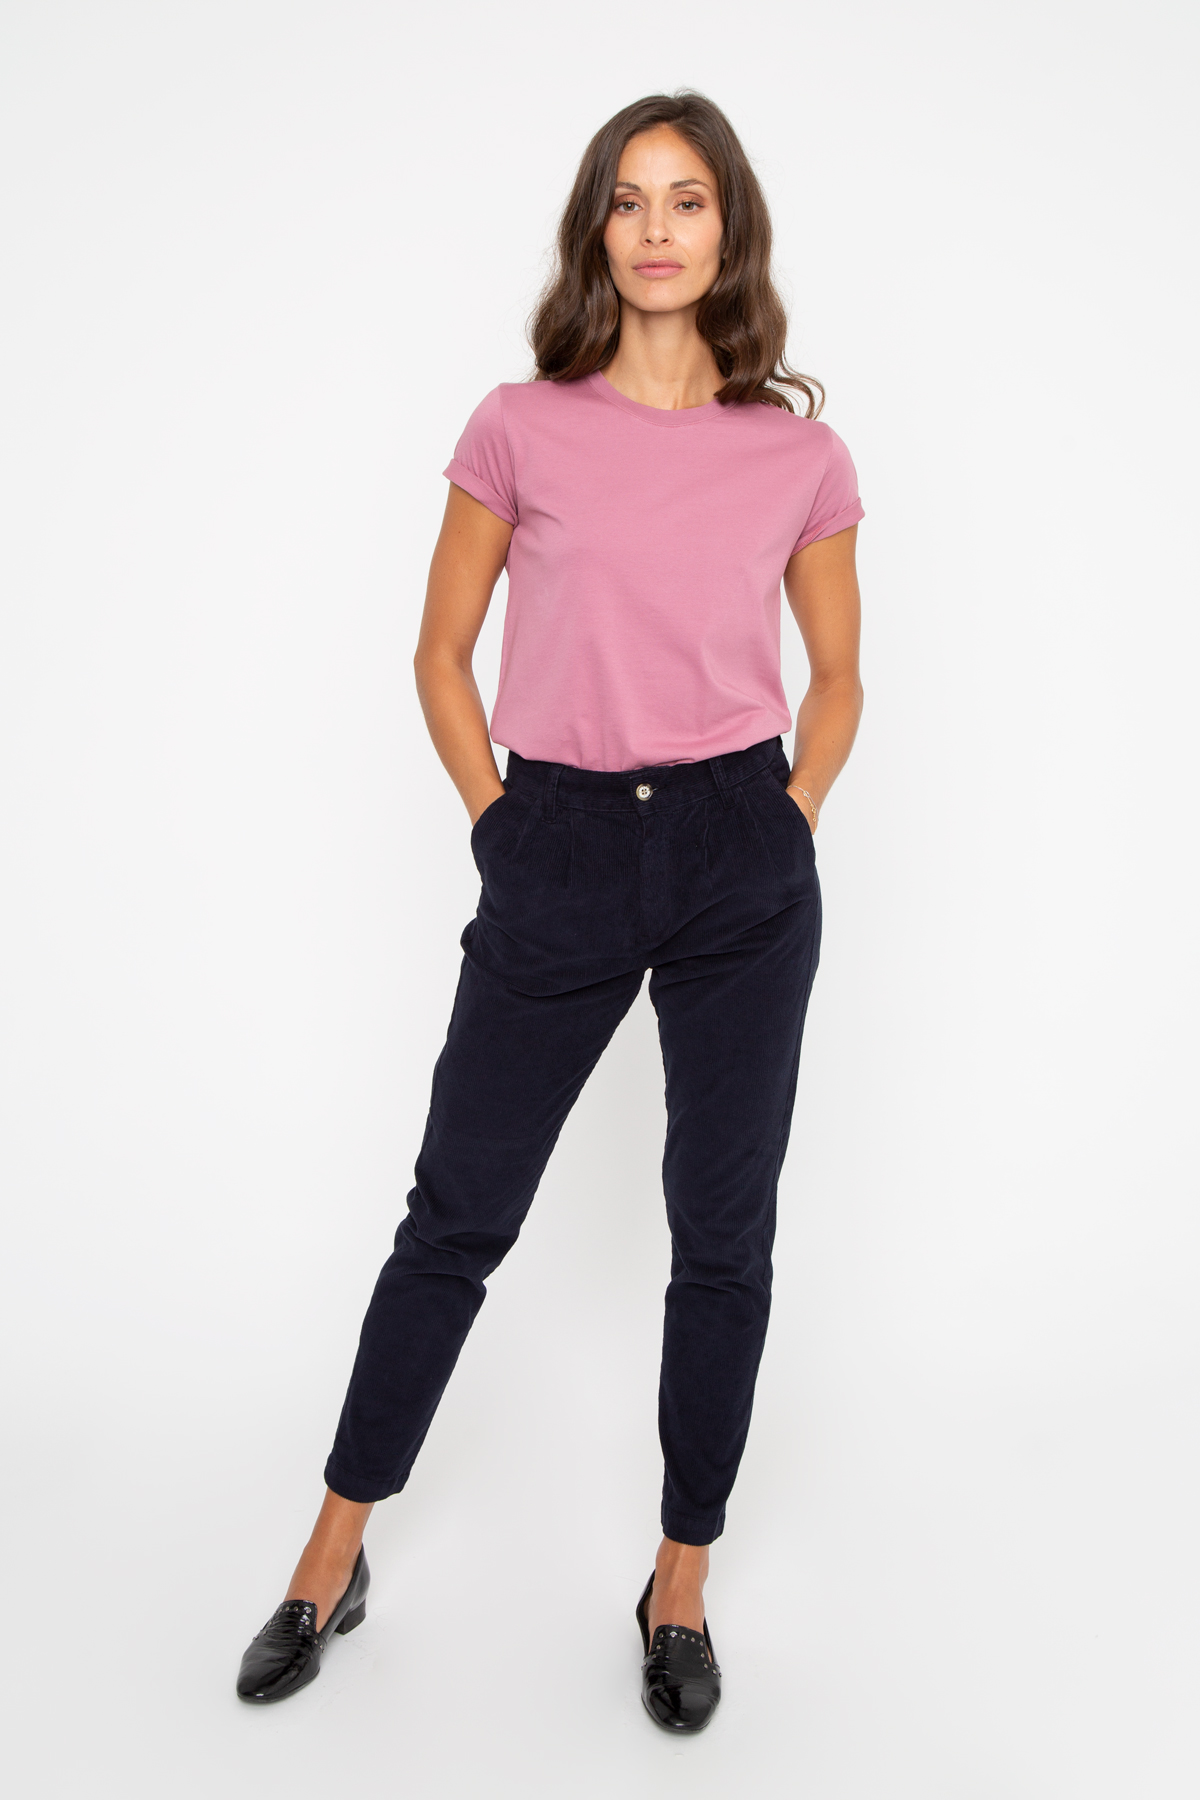 Photo de Pantalon & jogger femme Pantalon ADELE chez French Disorder